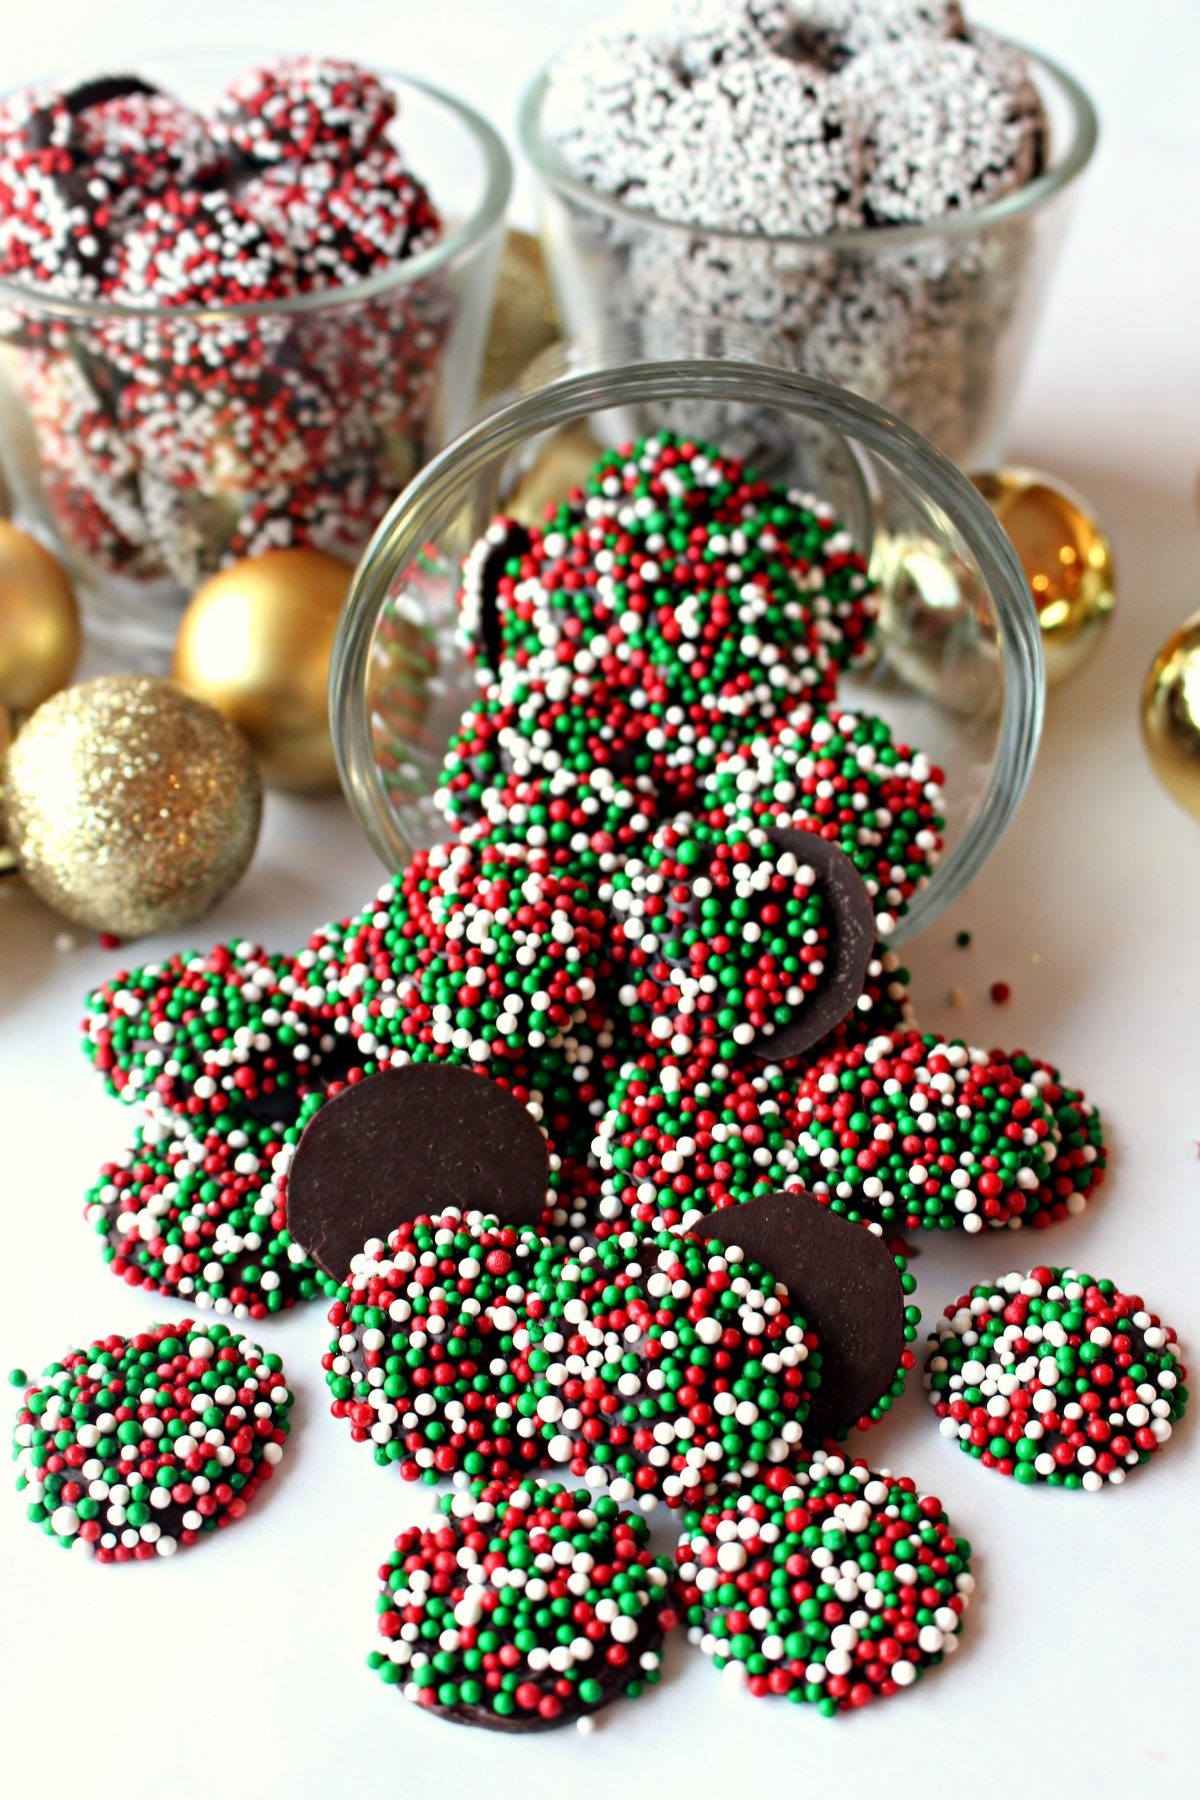 A tipped clear glass spilling out red and green sprinkled chocolates.